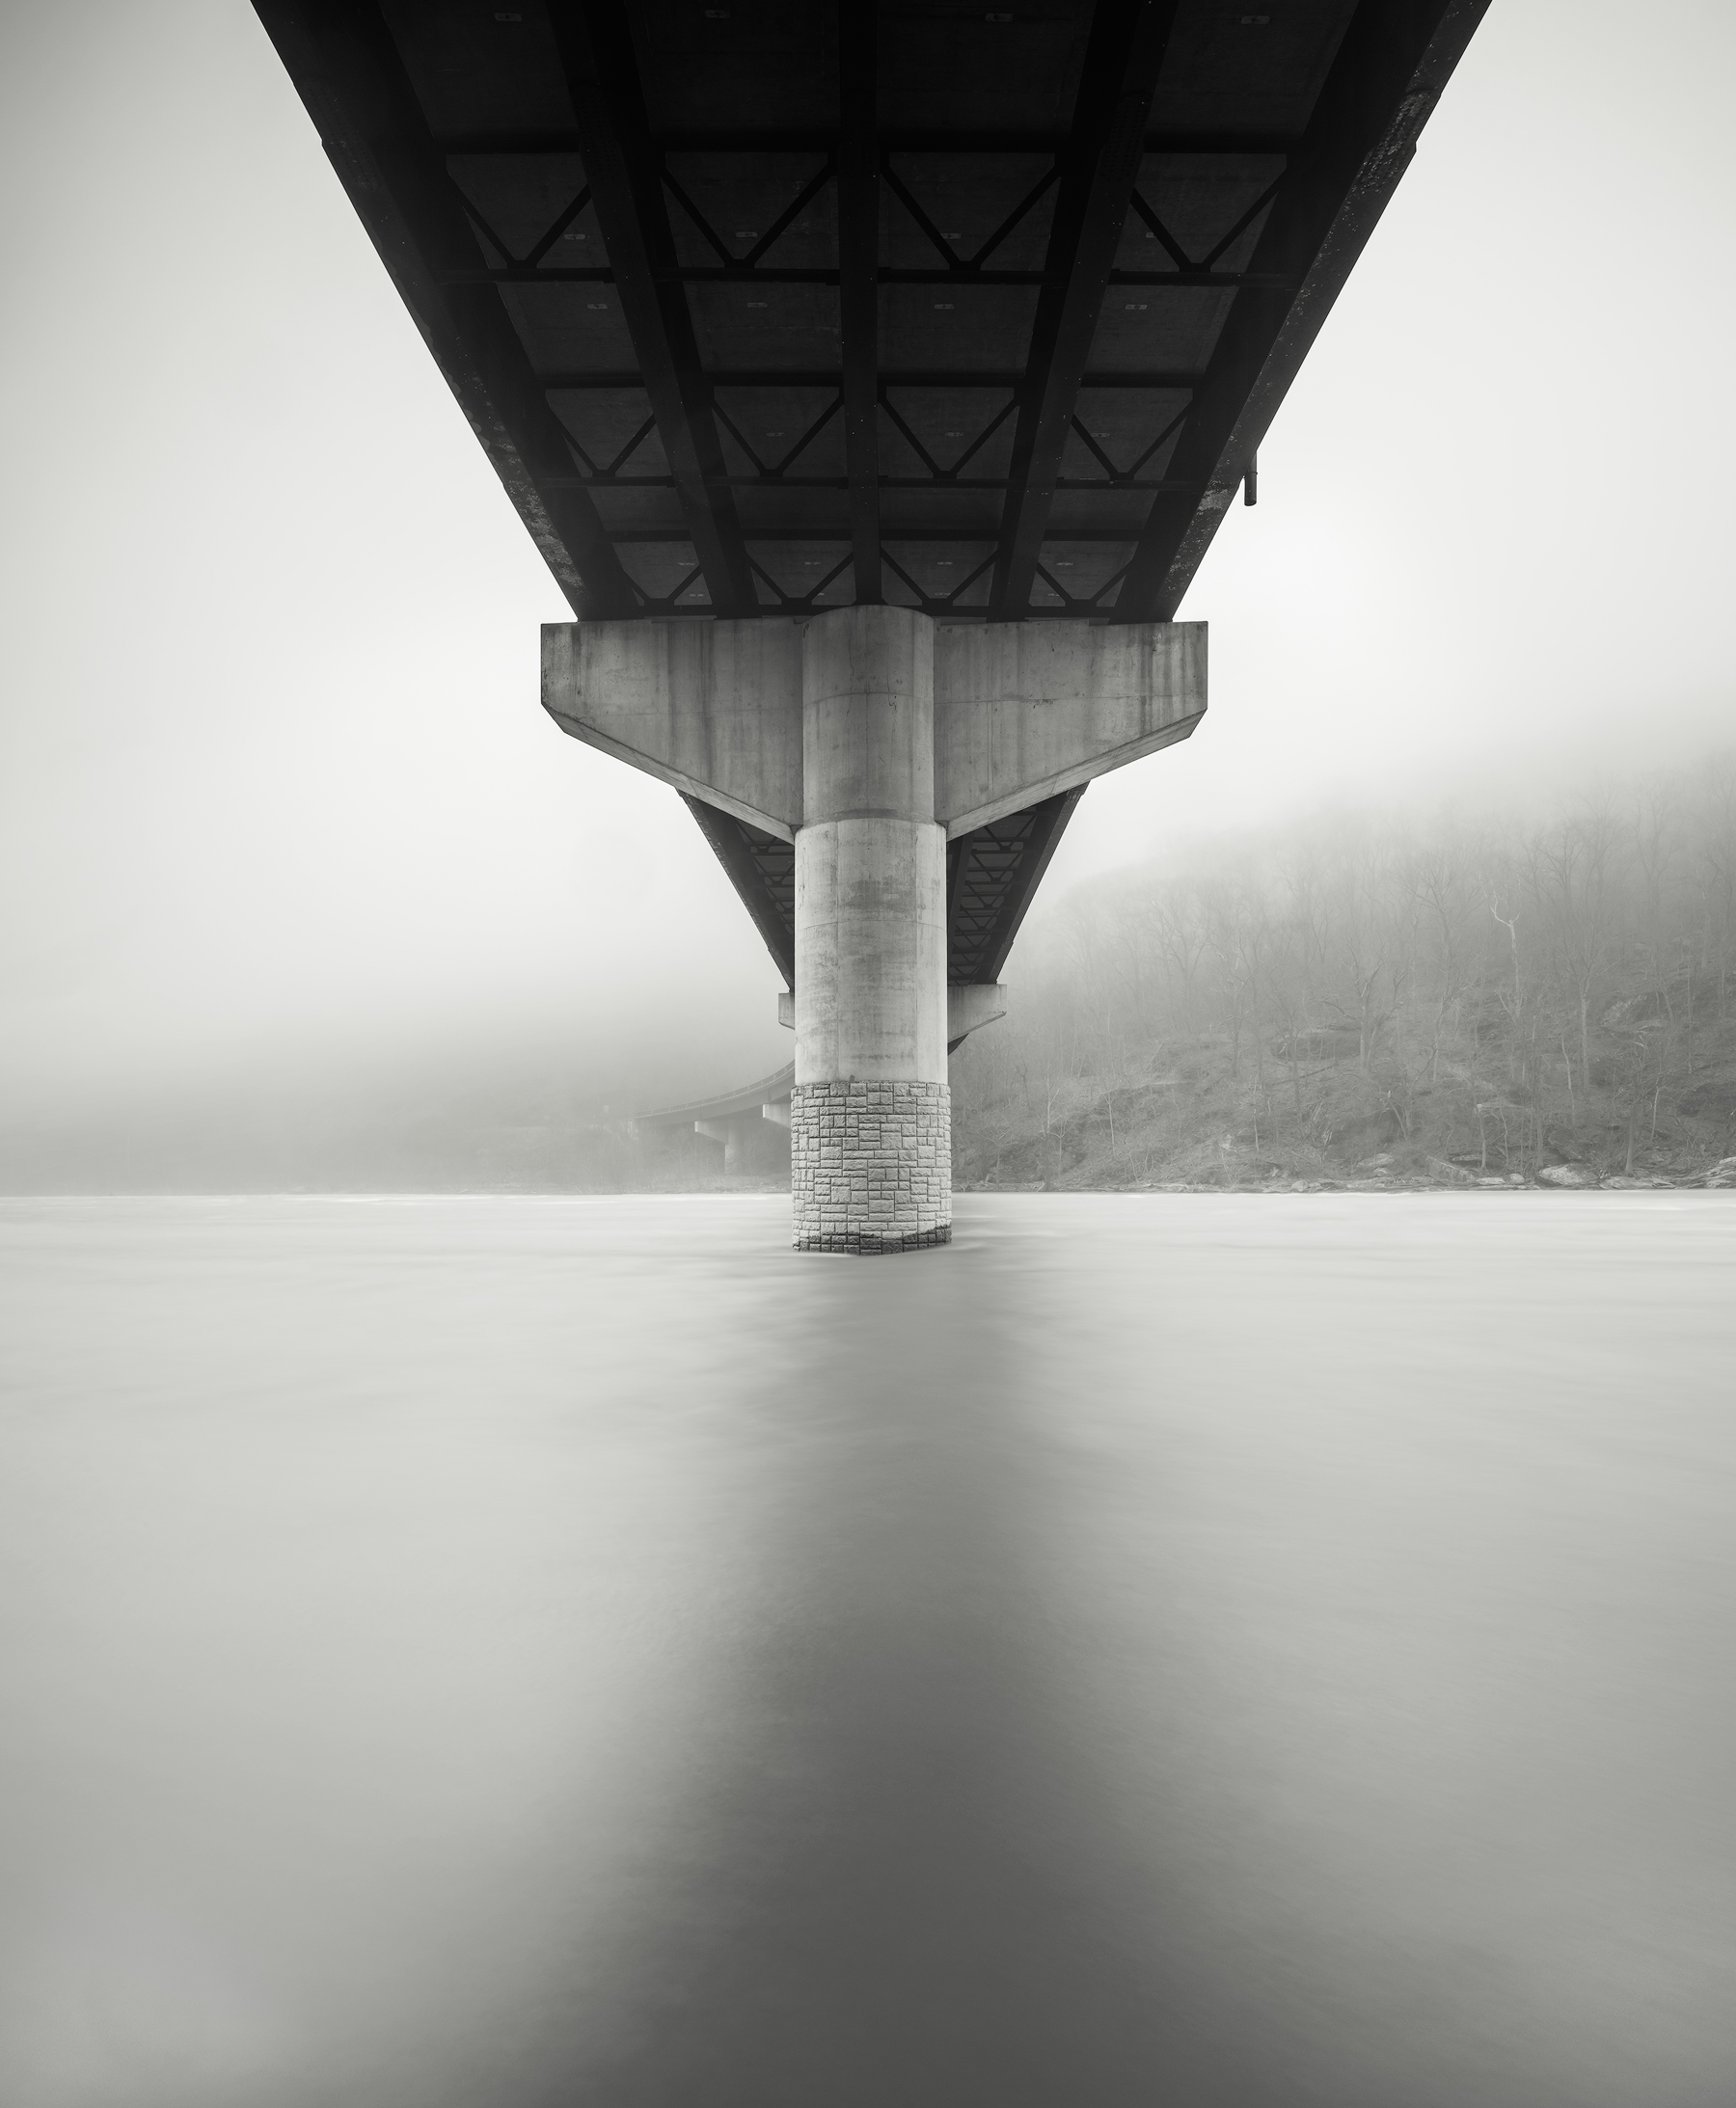 Bridge and Fog, Harpers Ferry, WV - Fuji GFX50s and a Fujinon GF32-64mm f4 R WR | ISO 100 at f11 for 120 seconds.